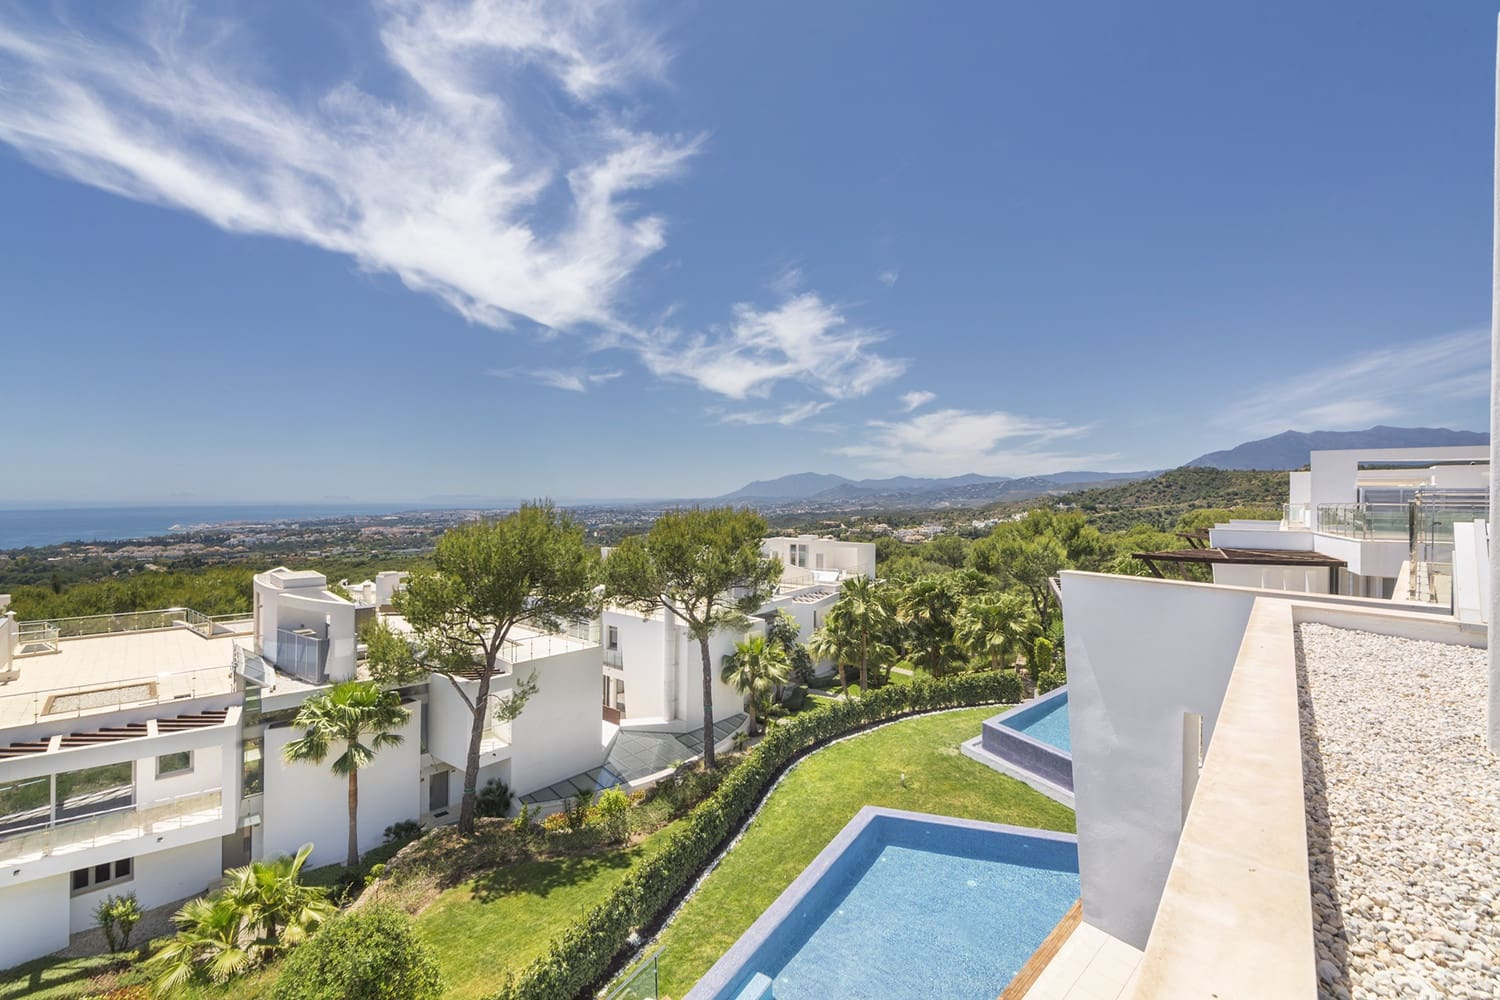 4 bedroom Townhouse for sale in Marbella with pool garage - € 1,980,000 (Ref: 4460606)